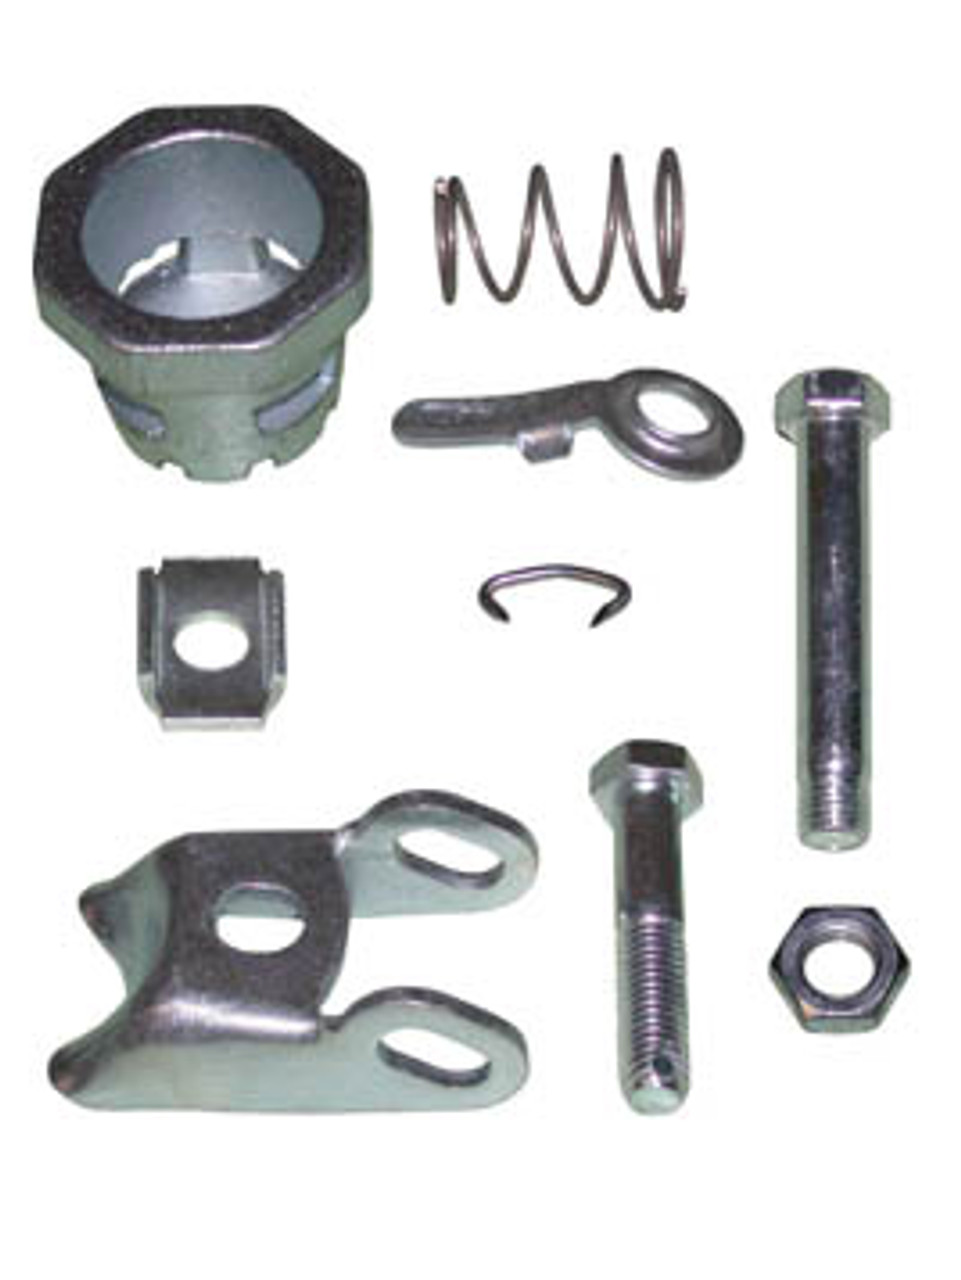 40454 --- Model 6 & 60 Actuator Coupler Repair Kit - Hand Wheel